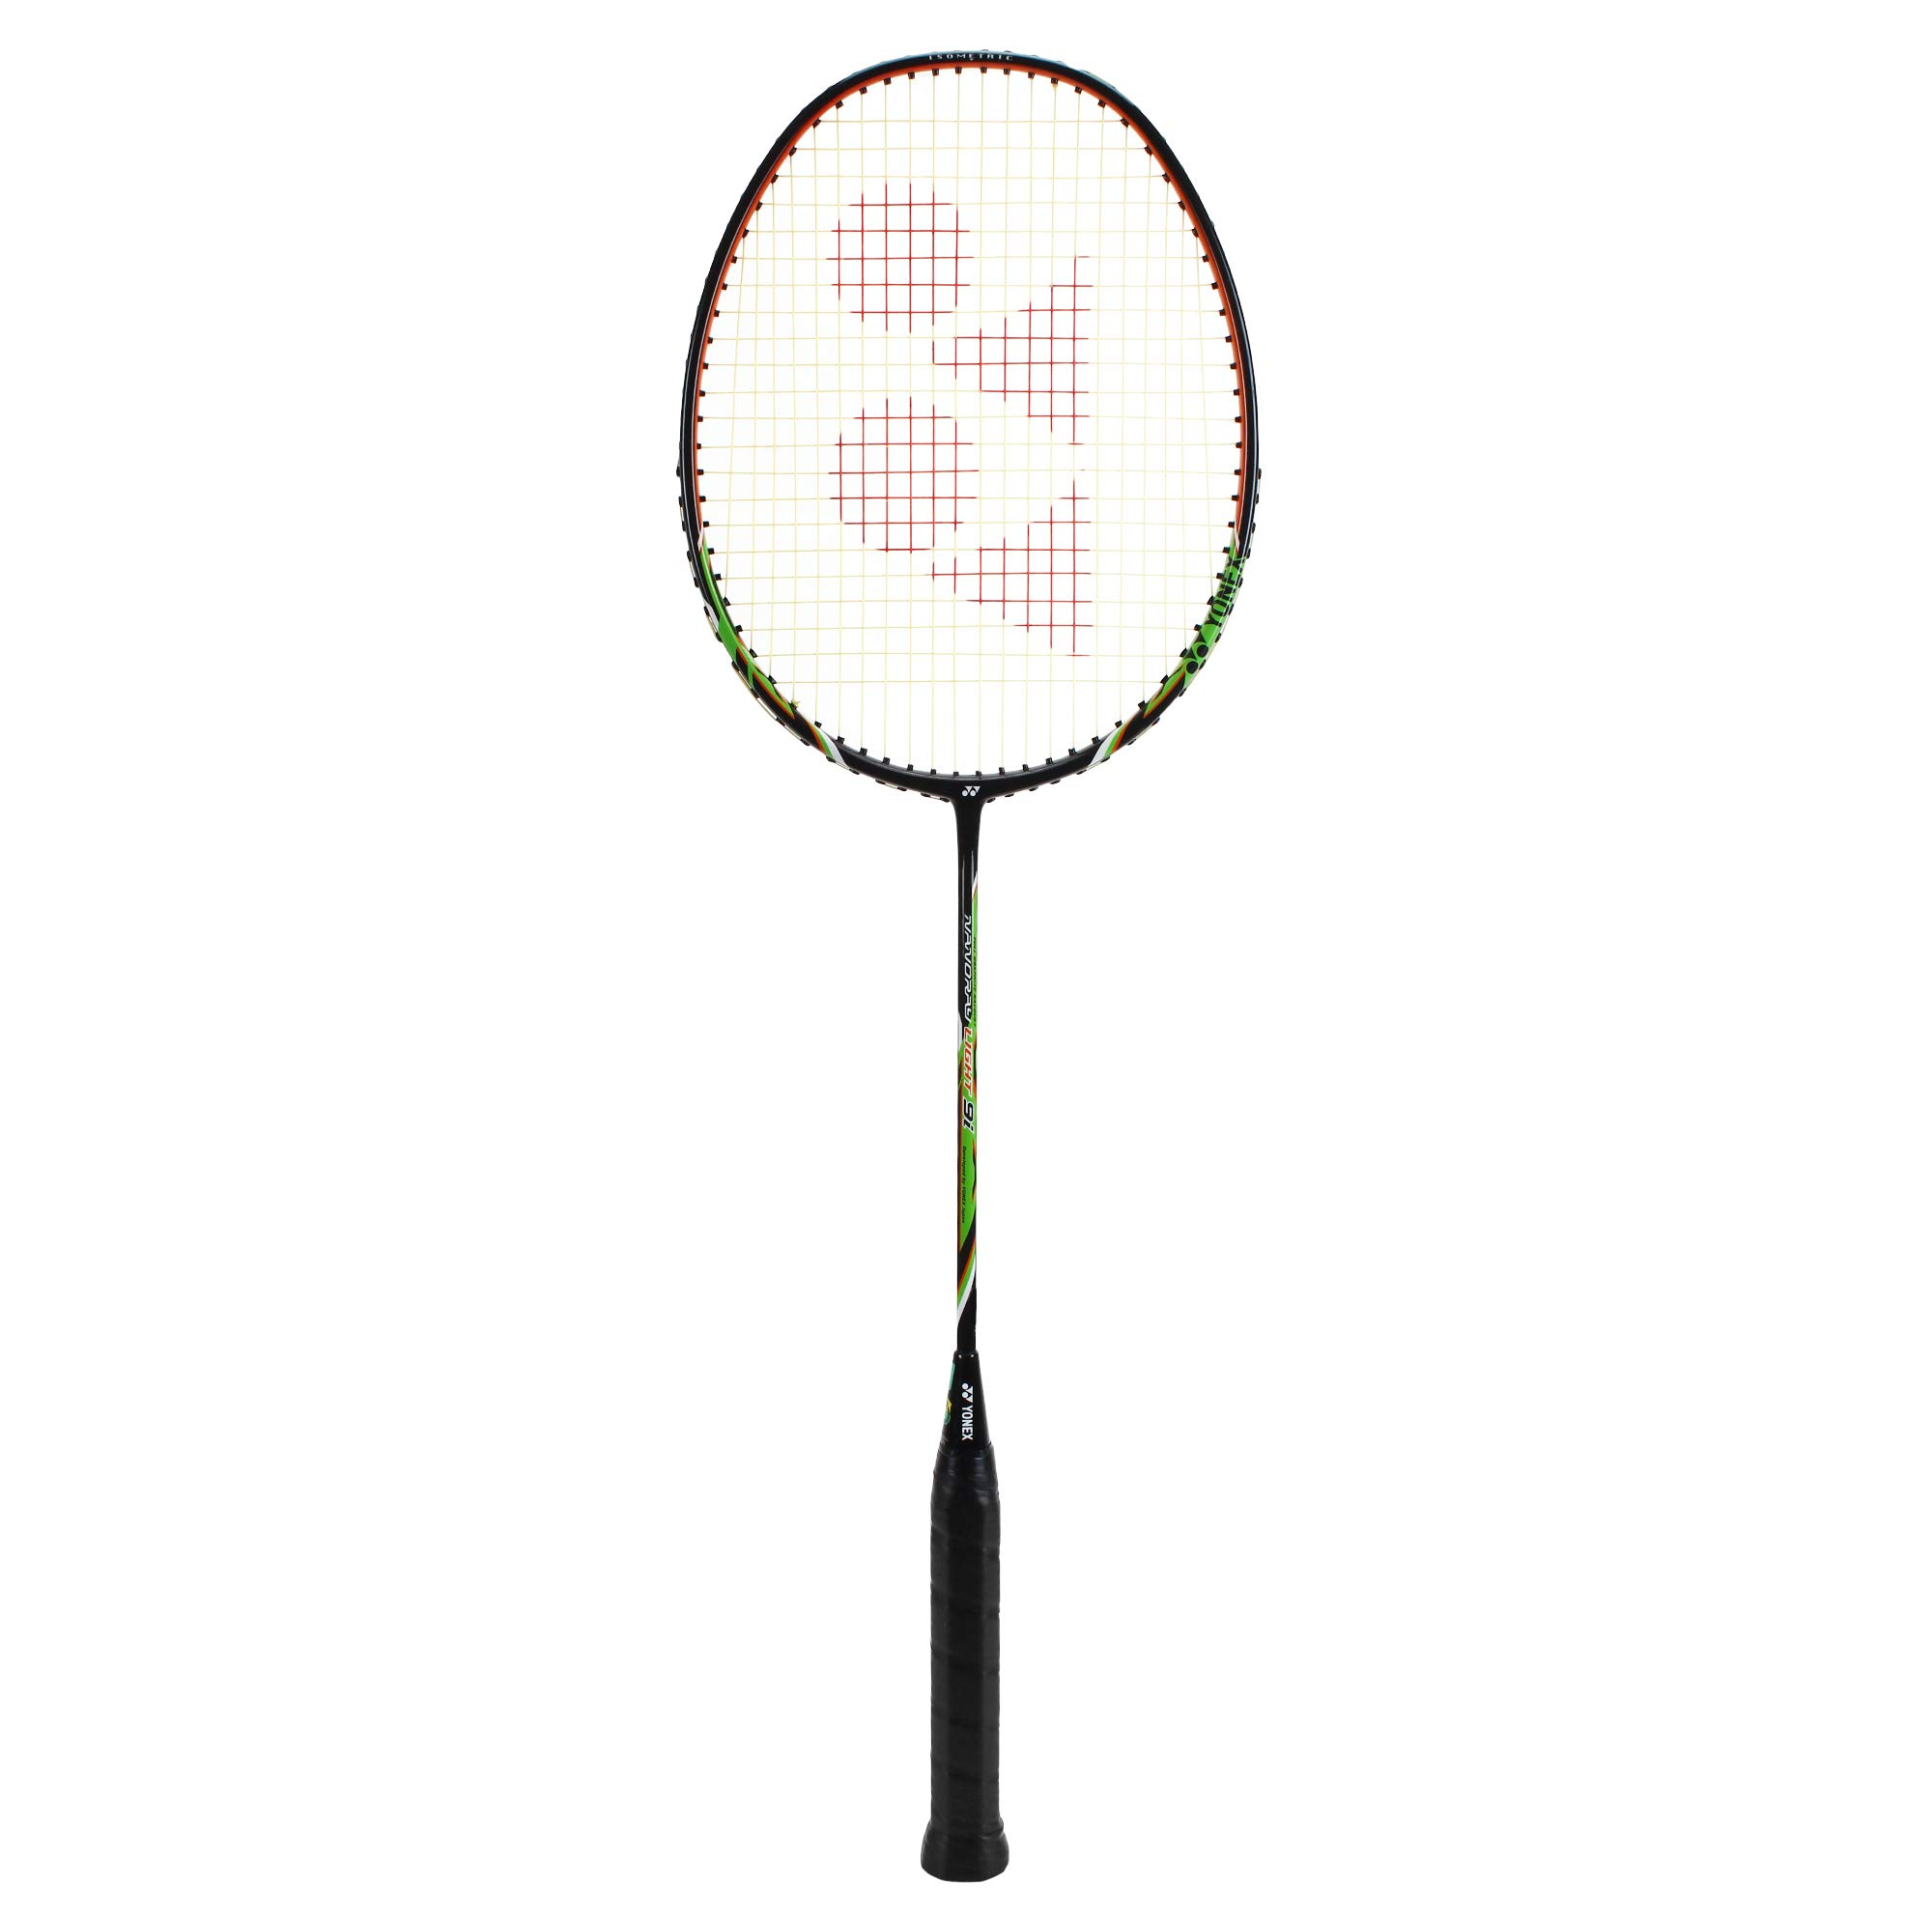 Yonex Nanoray Light 9i Graphite Badminton Racquet (Black, 77 Grams) product image